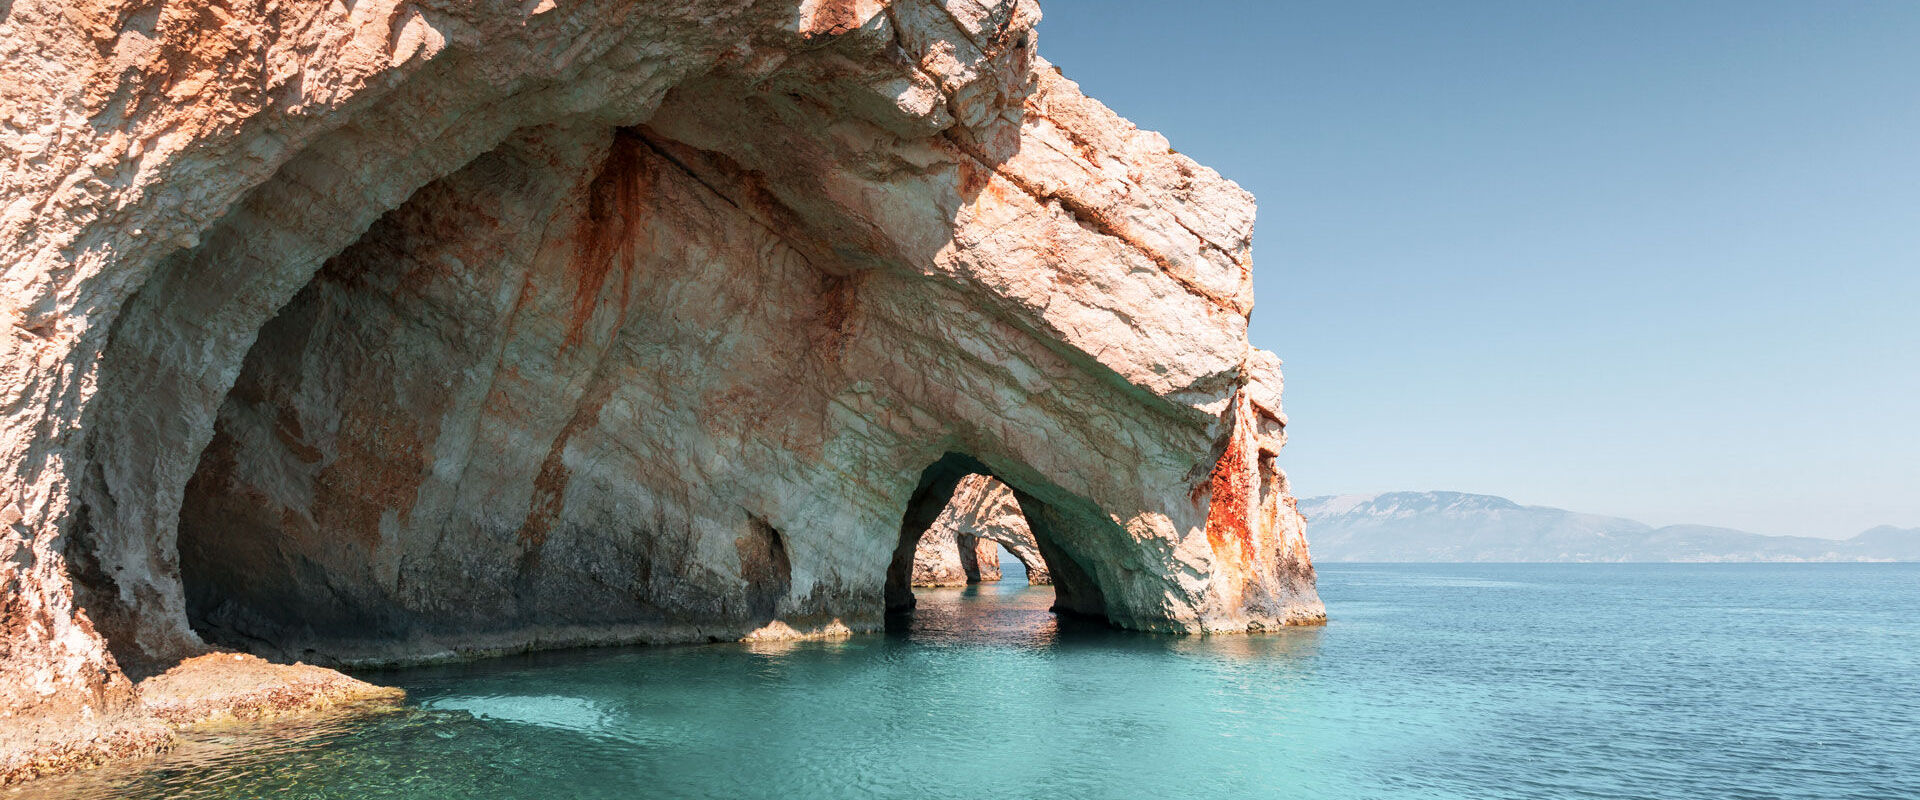 The Blue Caves of Zakynthos, one of the most beautiful natural escapes of the island